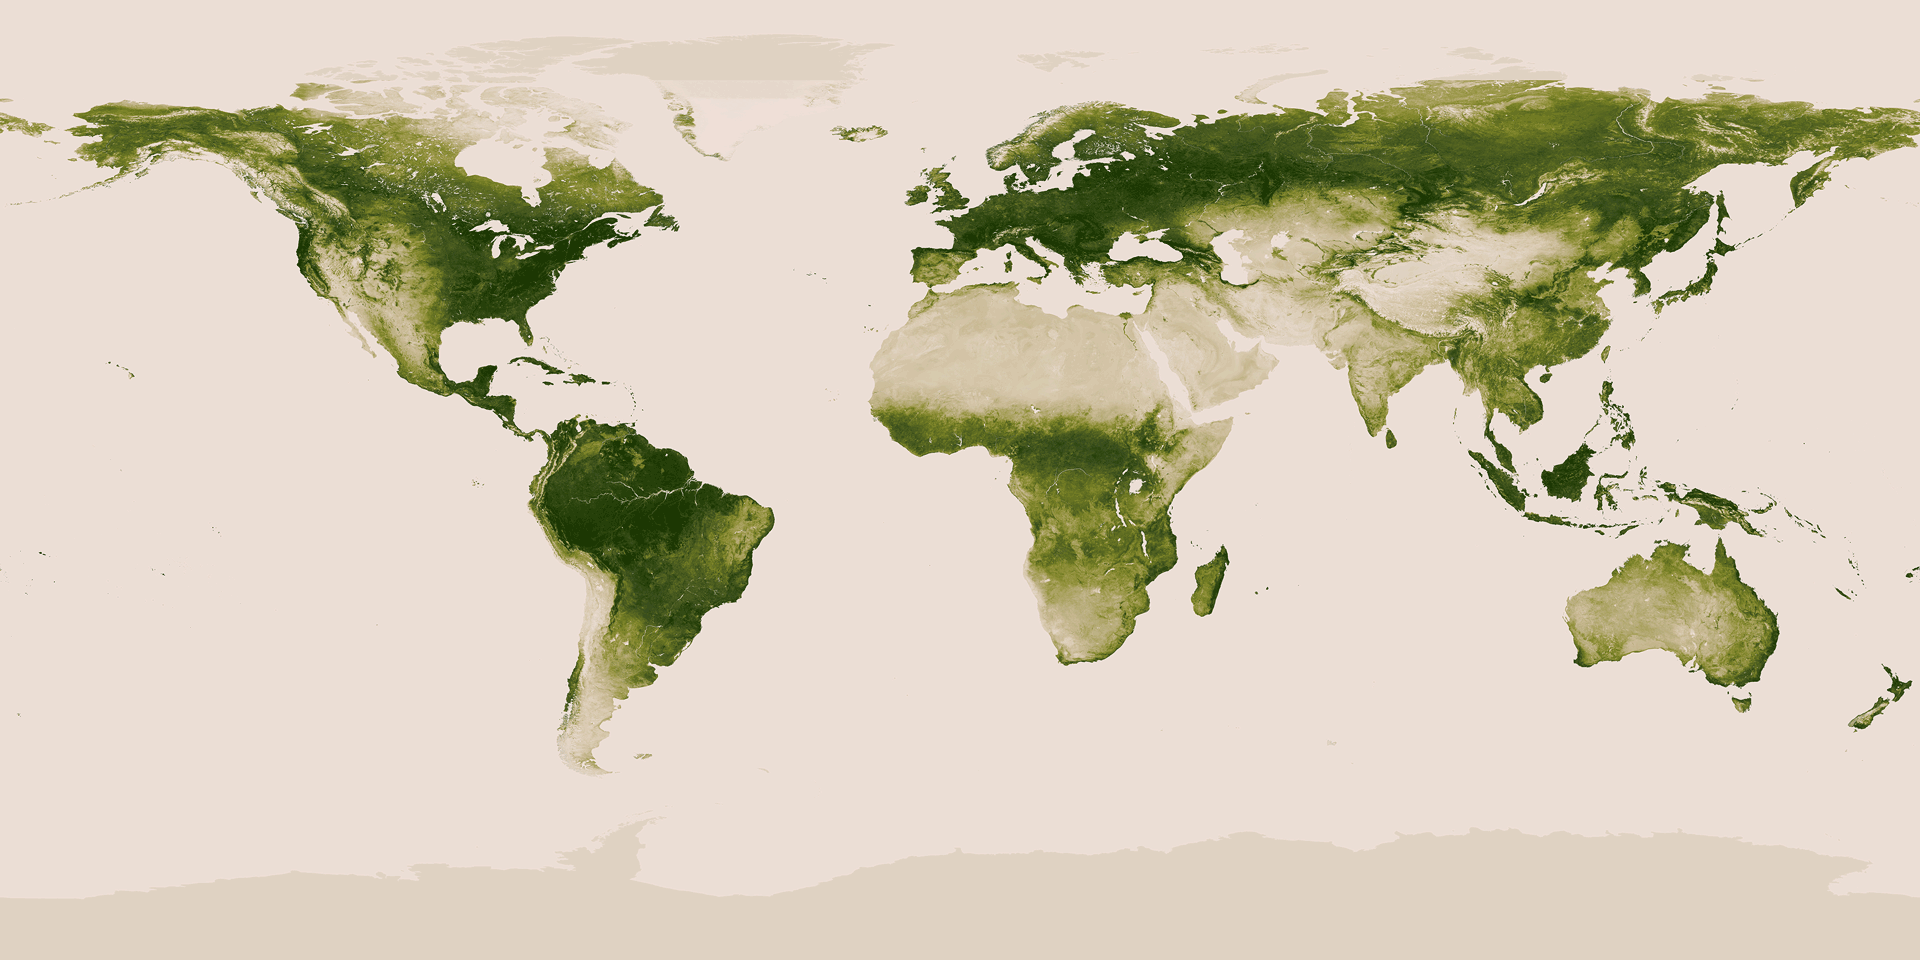 Land Use - Our World in Data